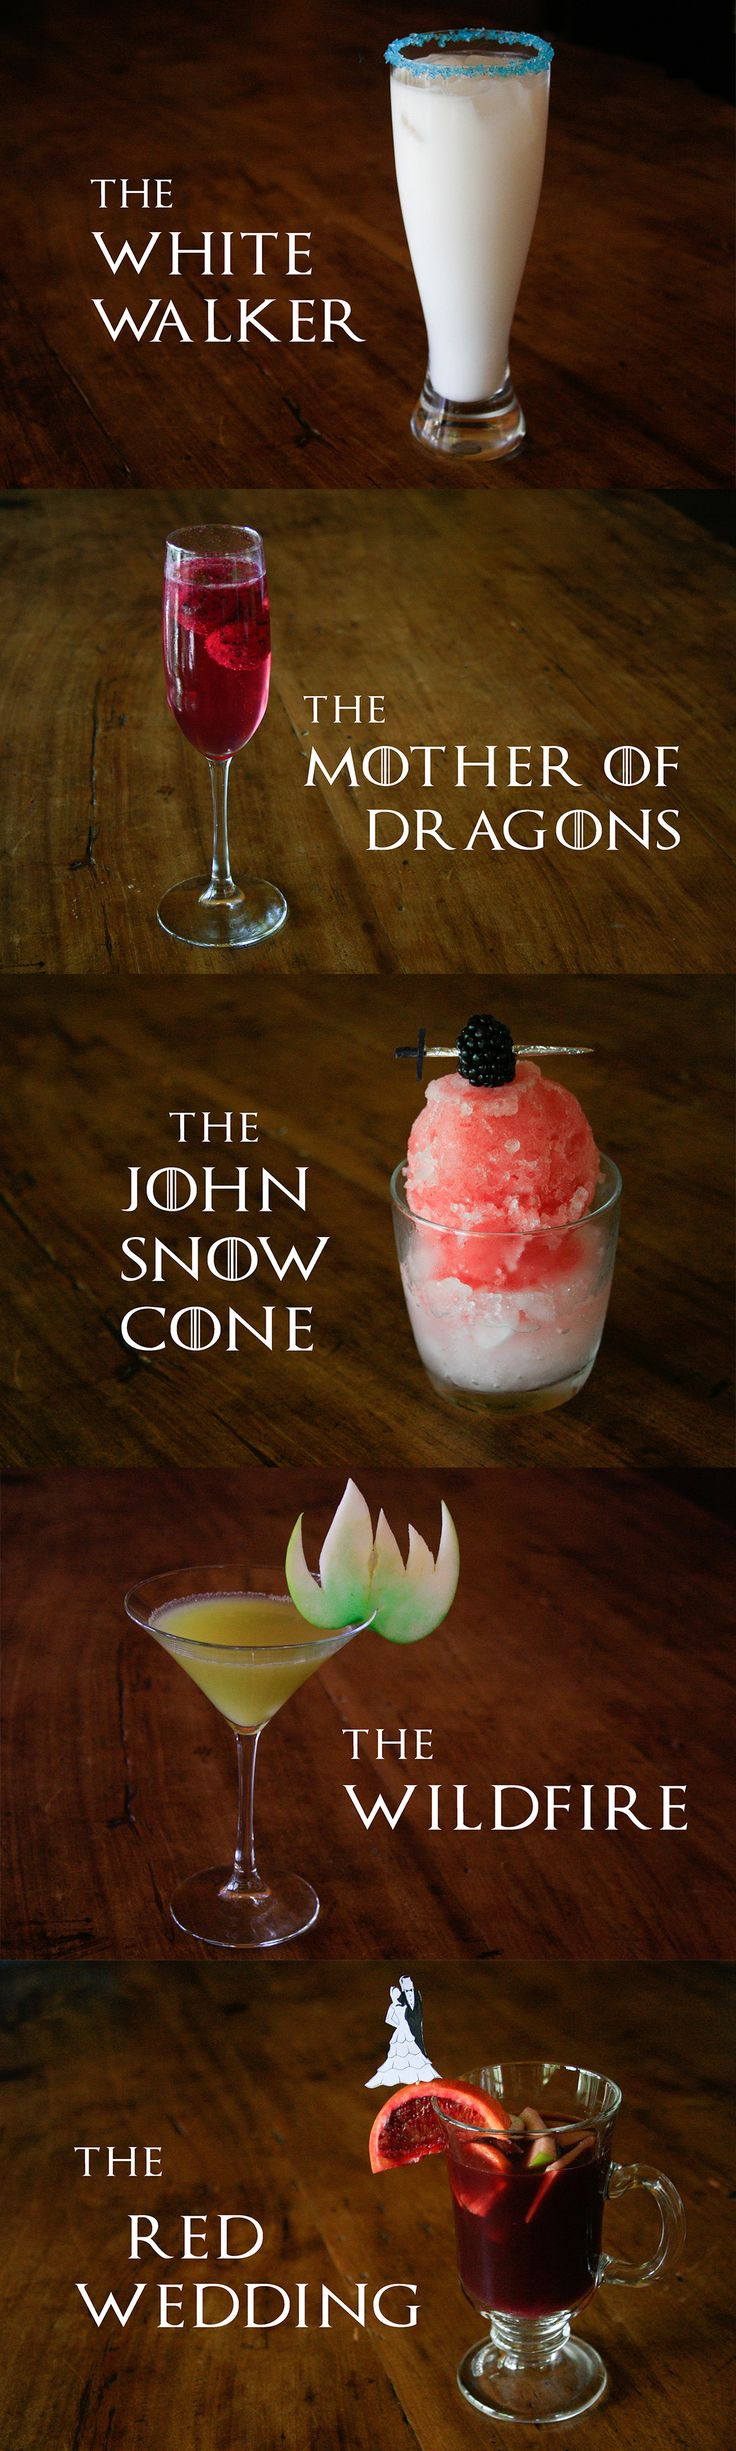 Game of Thrones Themed Cocktails